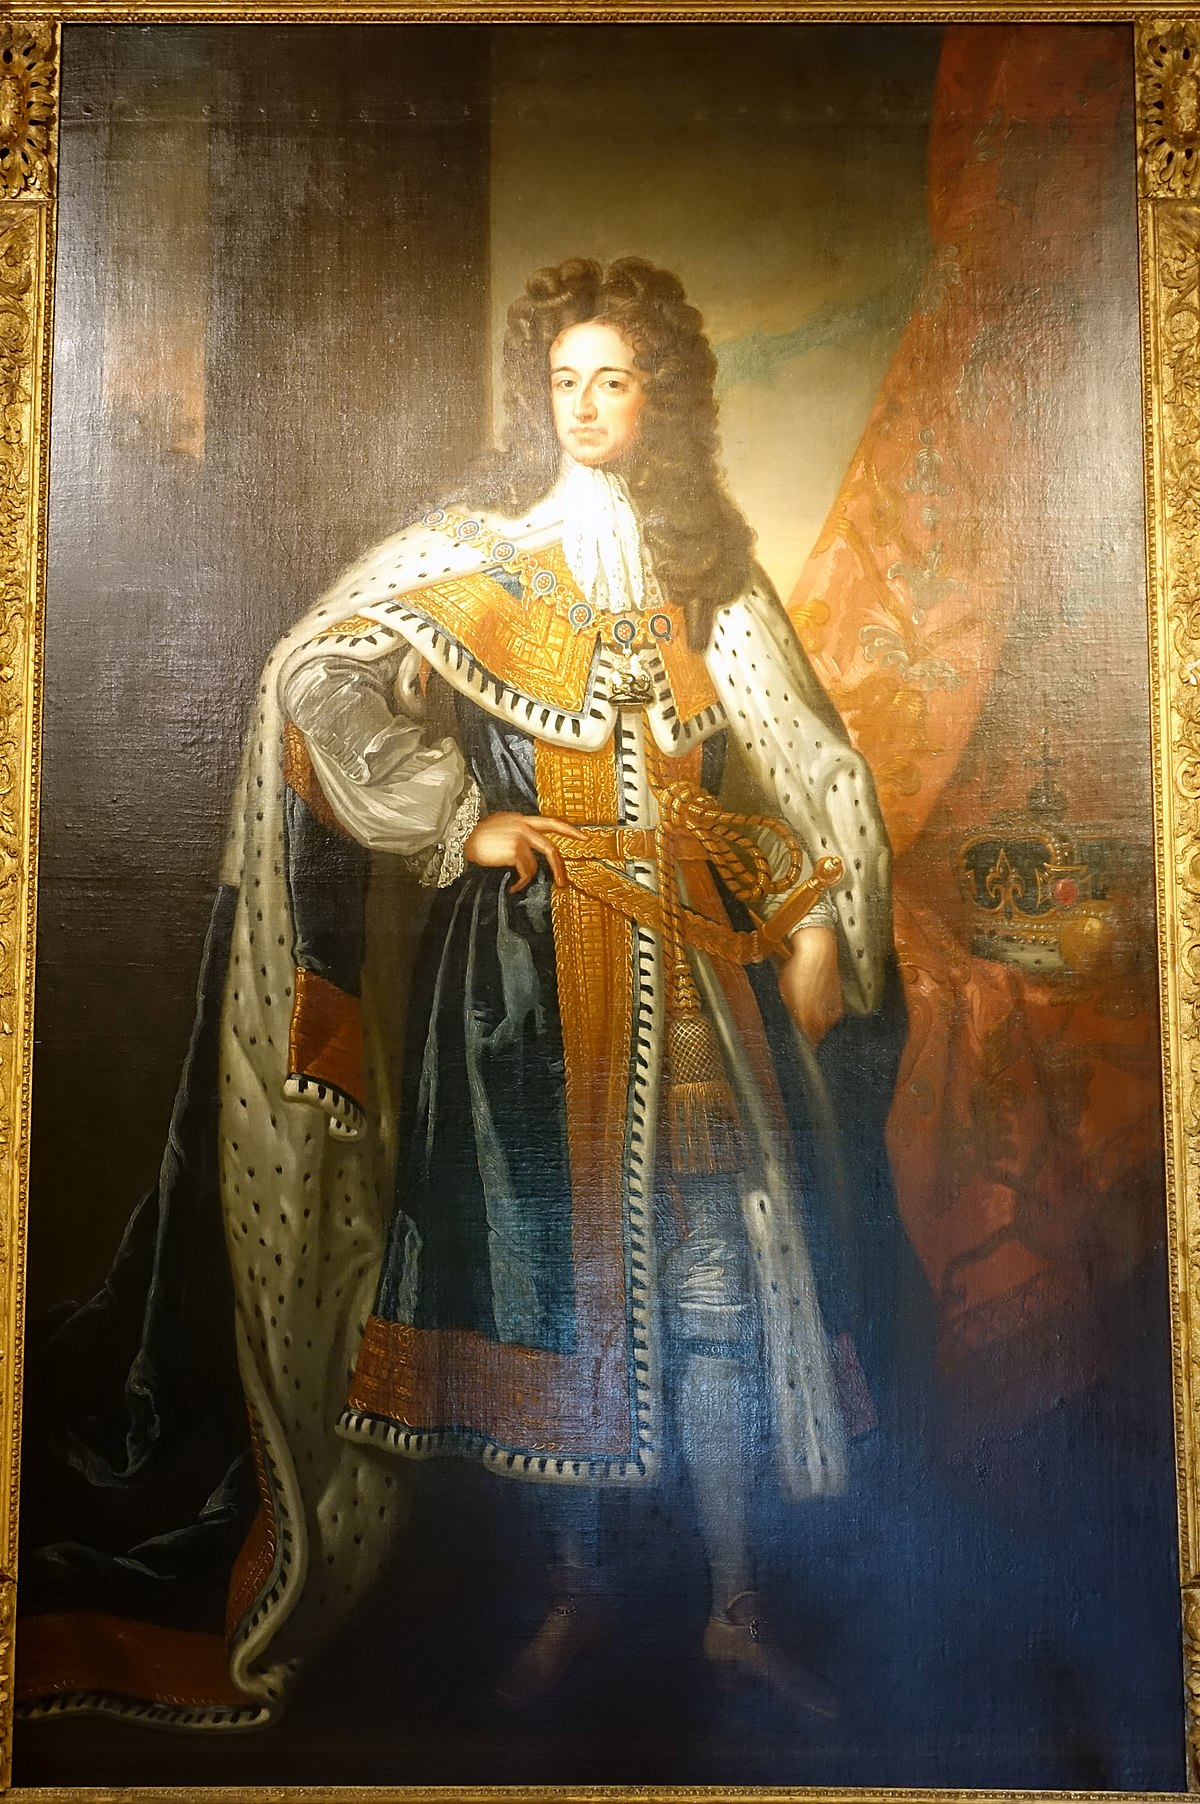 Chatsworth House History: File:State Portrait Of King William III, Contemporary Copy